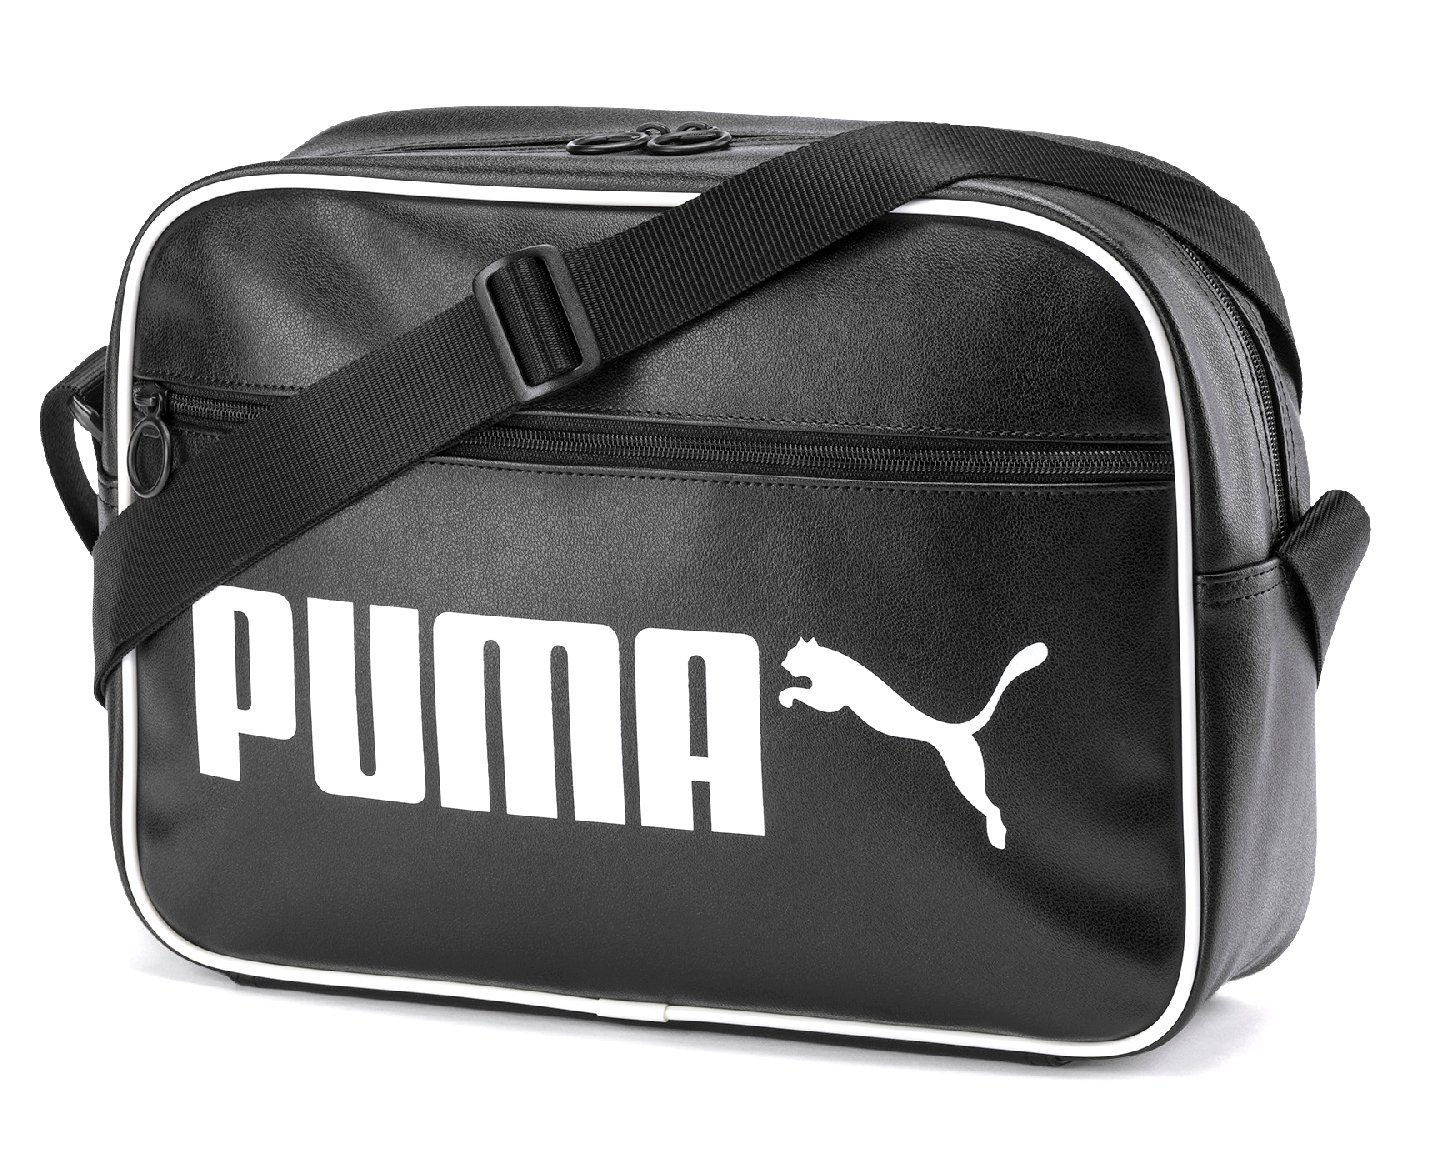 Puma Courier Bag - Black from Puma